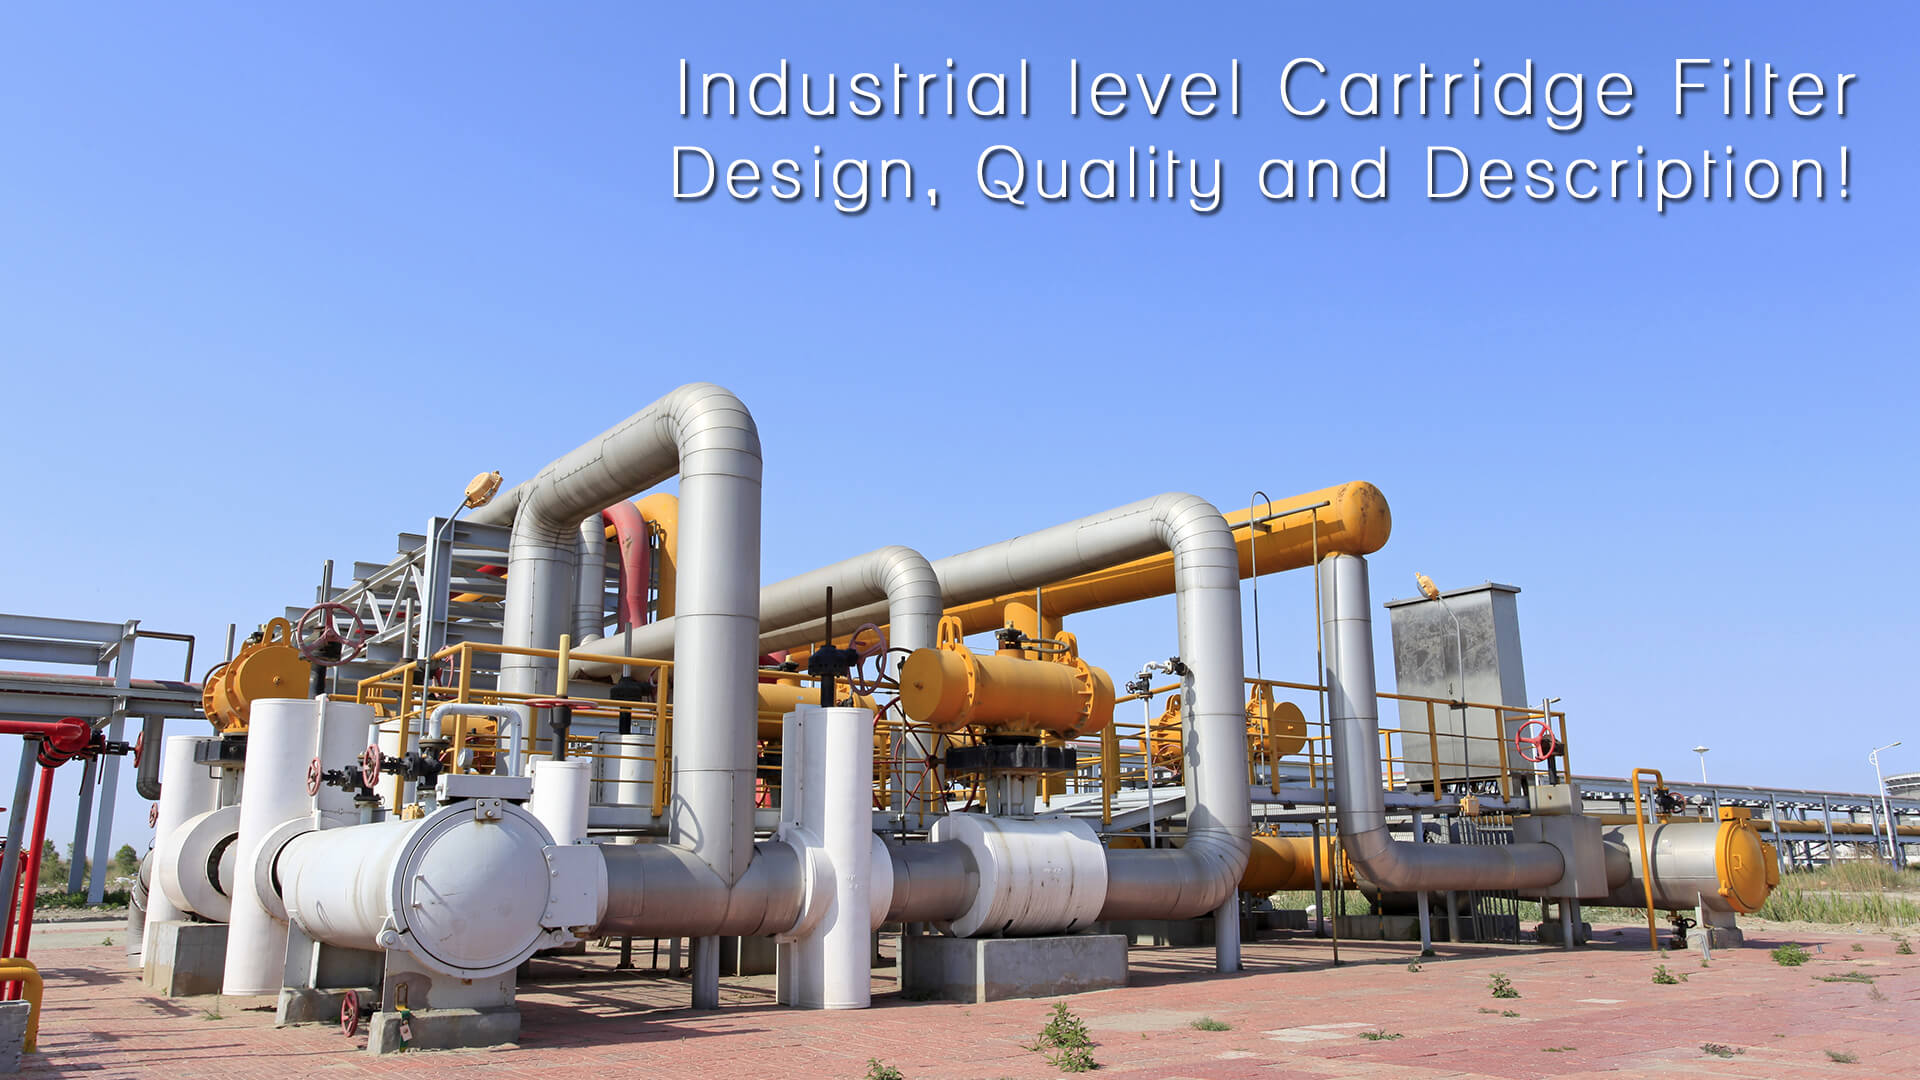 Industrial level cartridge filters with world level quality standards!